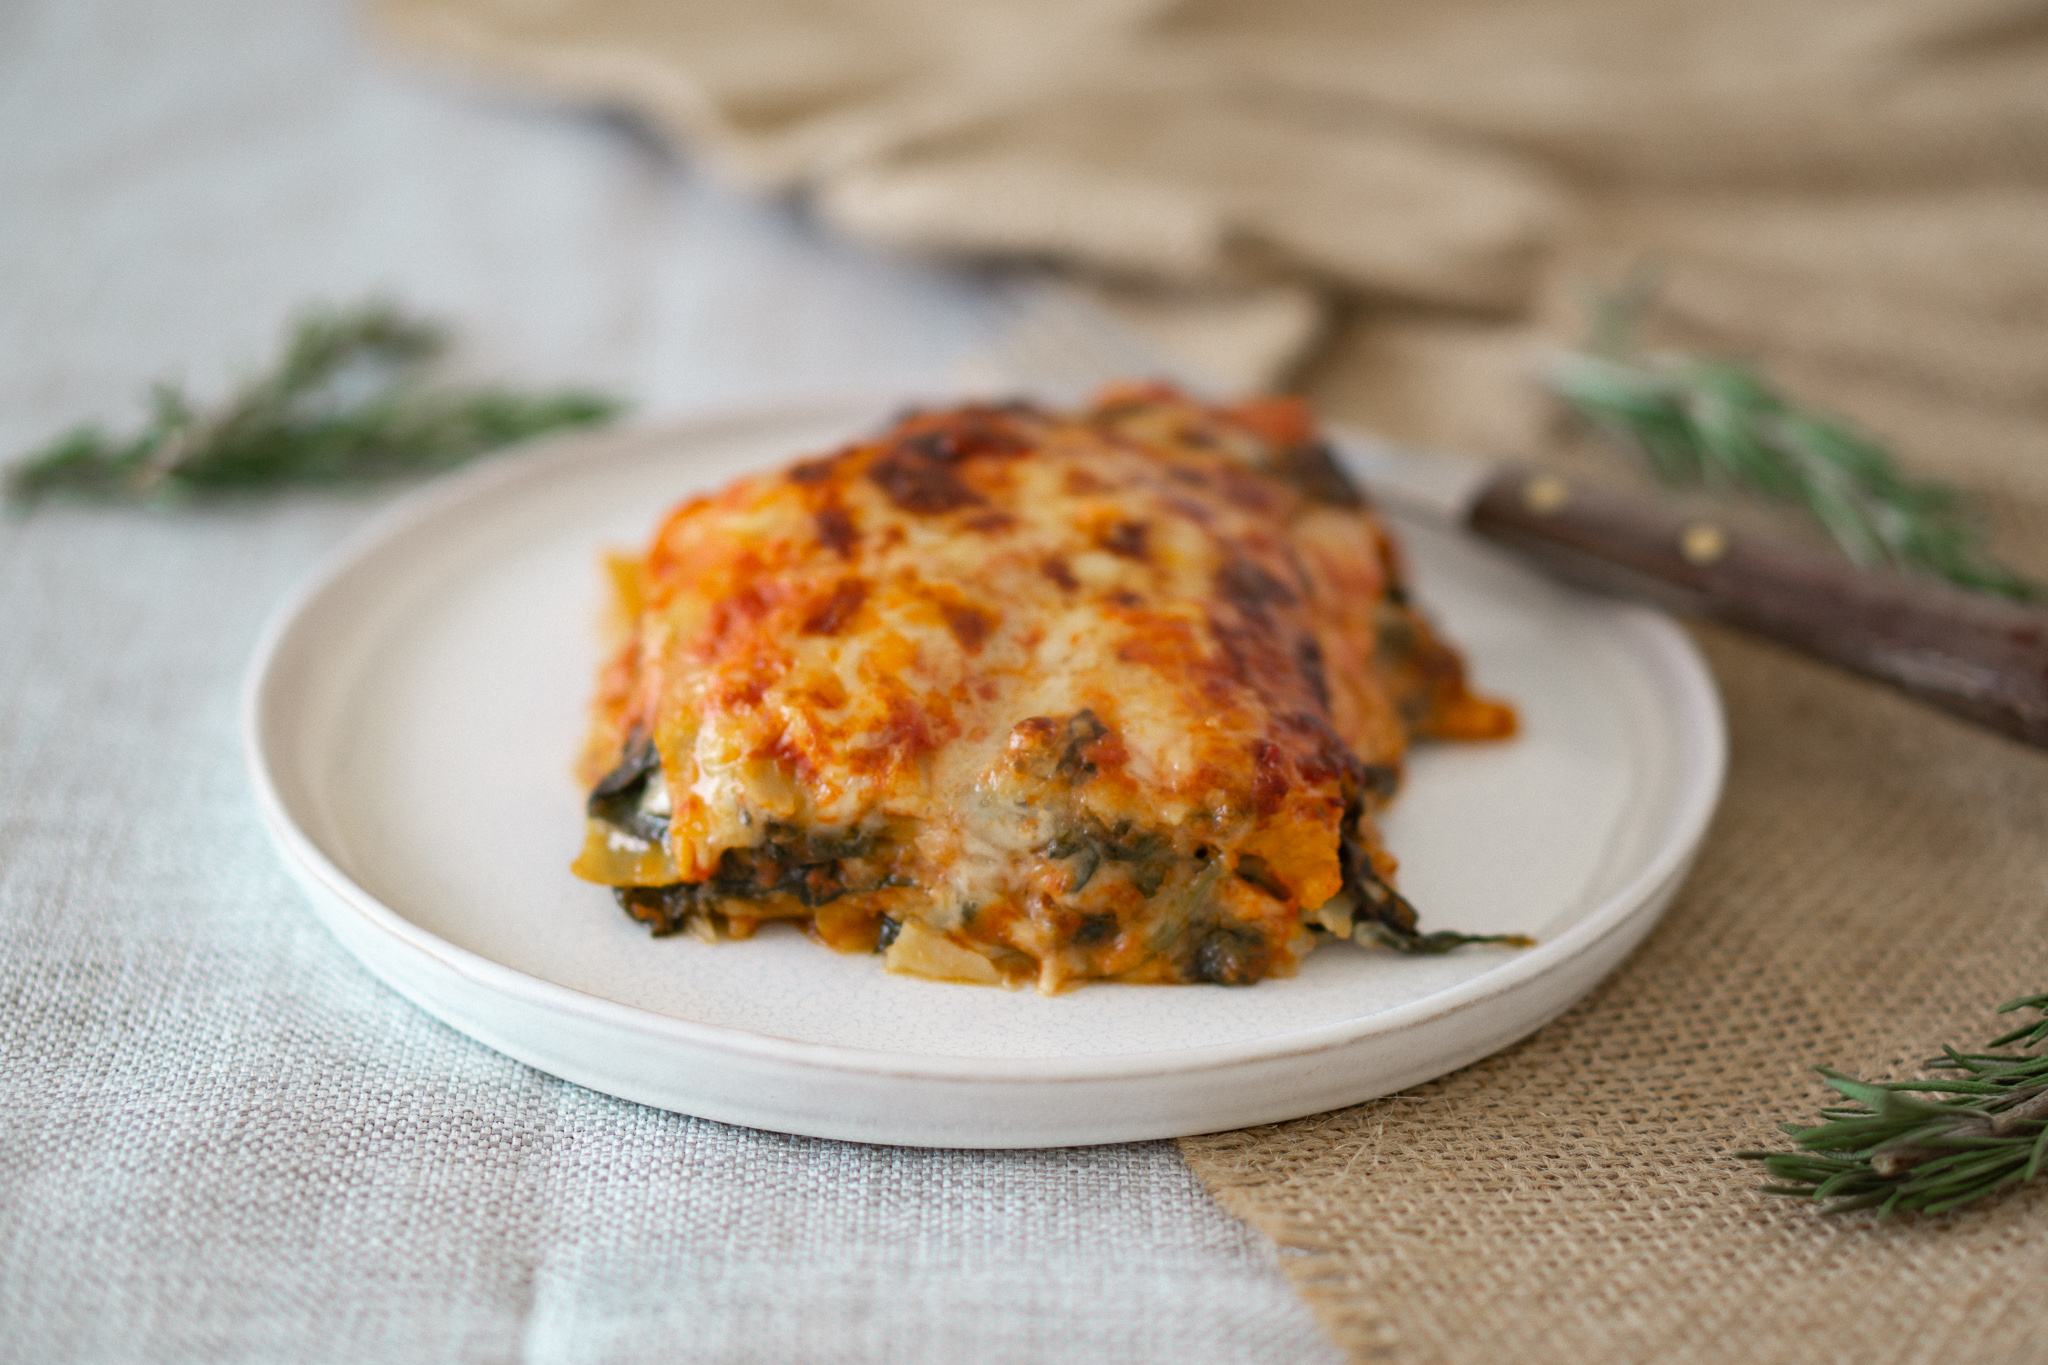 Vegetarian Lasagna with Pumpkin, Zucchini & Spinach